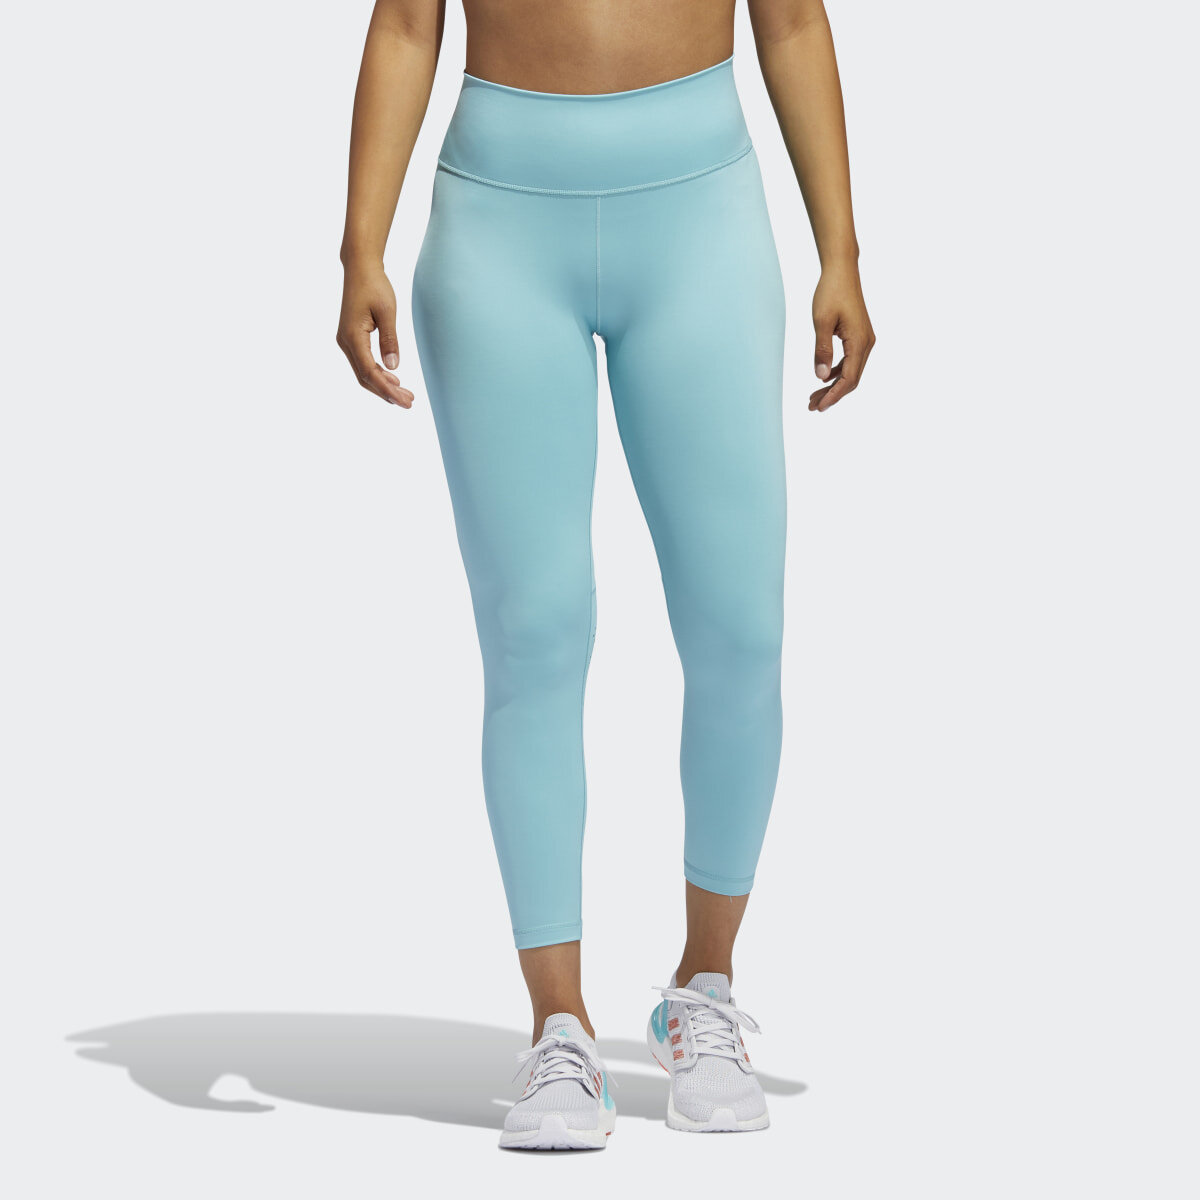 Believe This 2.0 Primeblue 7/8 Tights